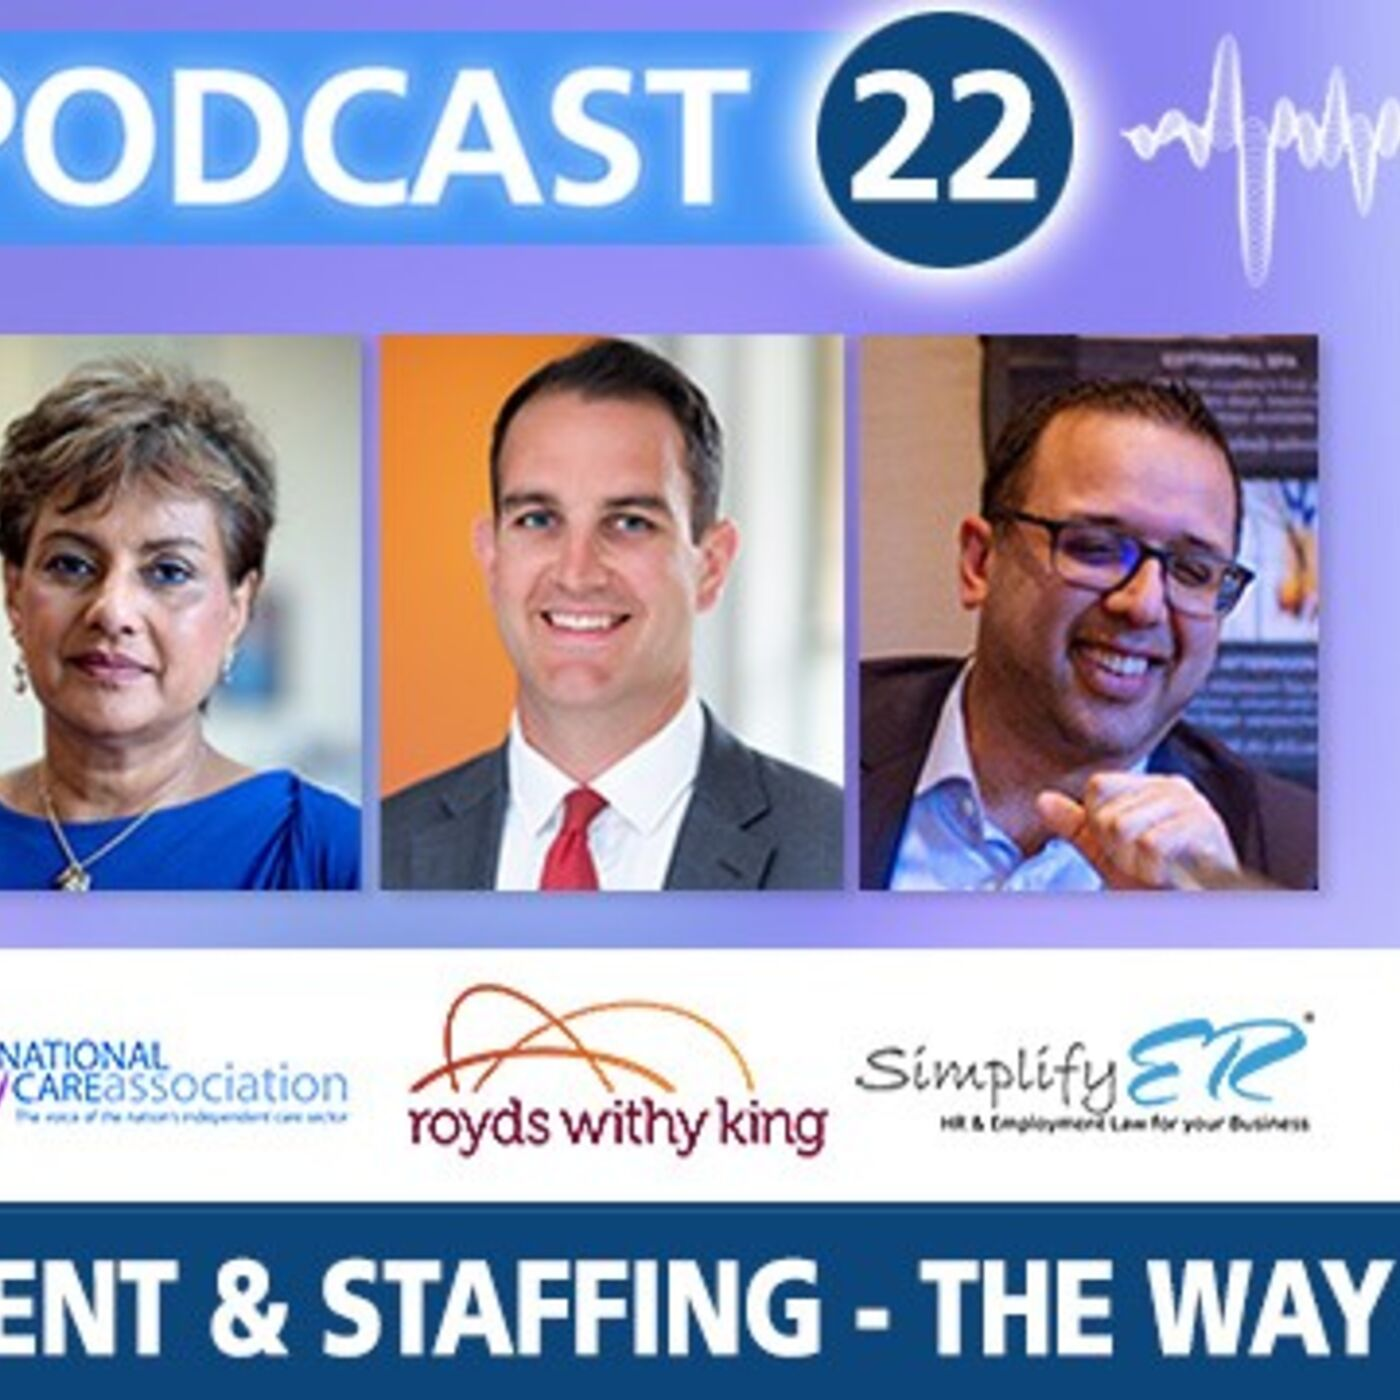 Recruitment & Staffing - The Way Forward. Special podcast from Care Home Management